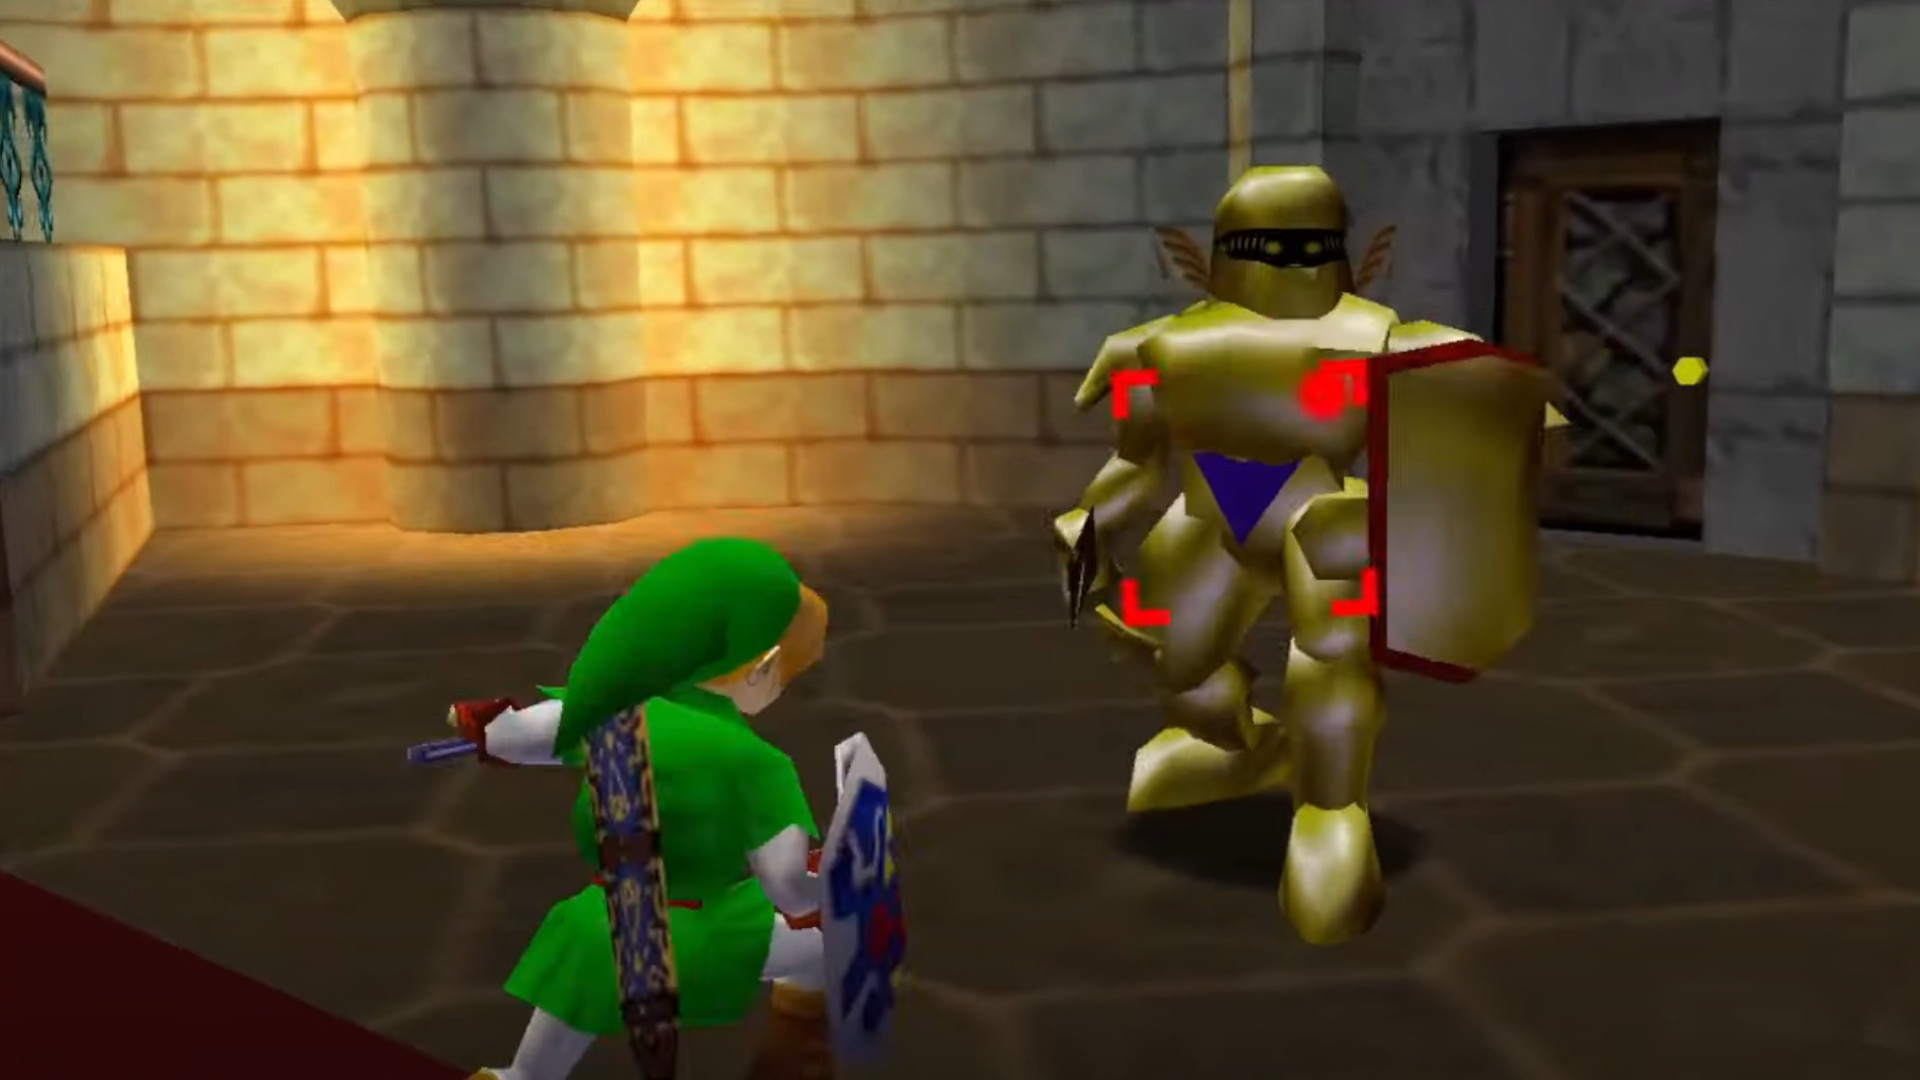 Zelda: Ocarina of Time mod aims to recreate the pre-release Space World version